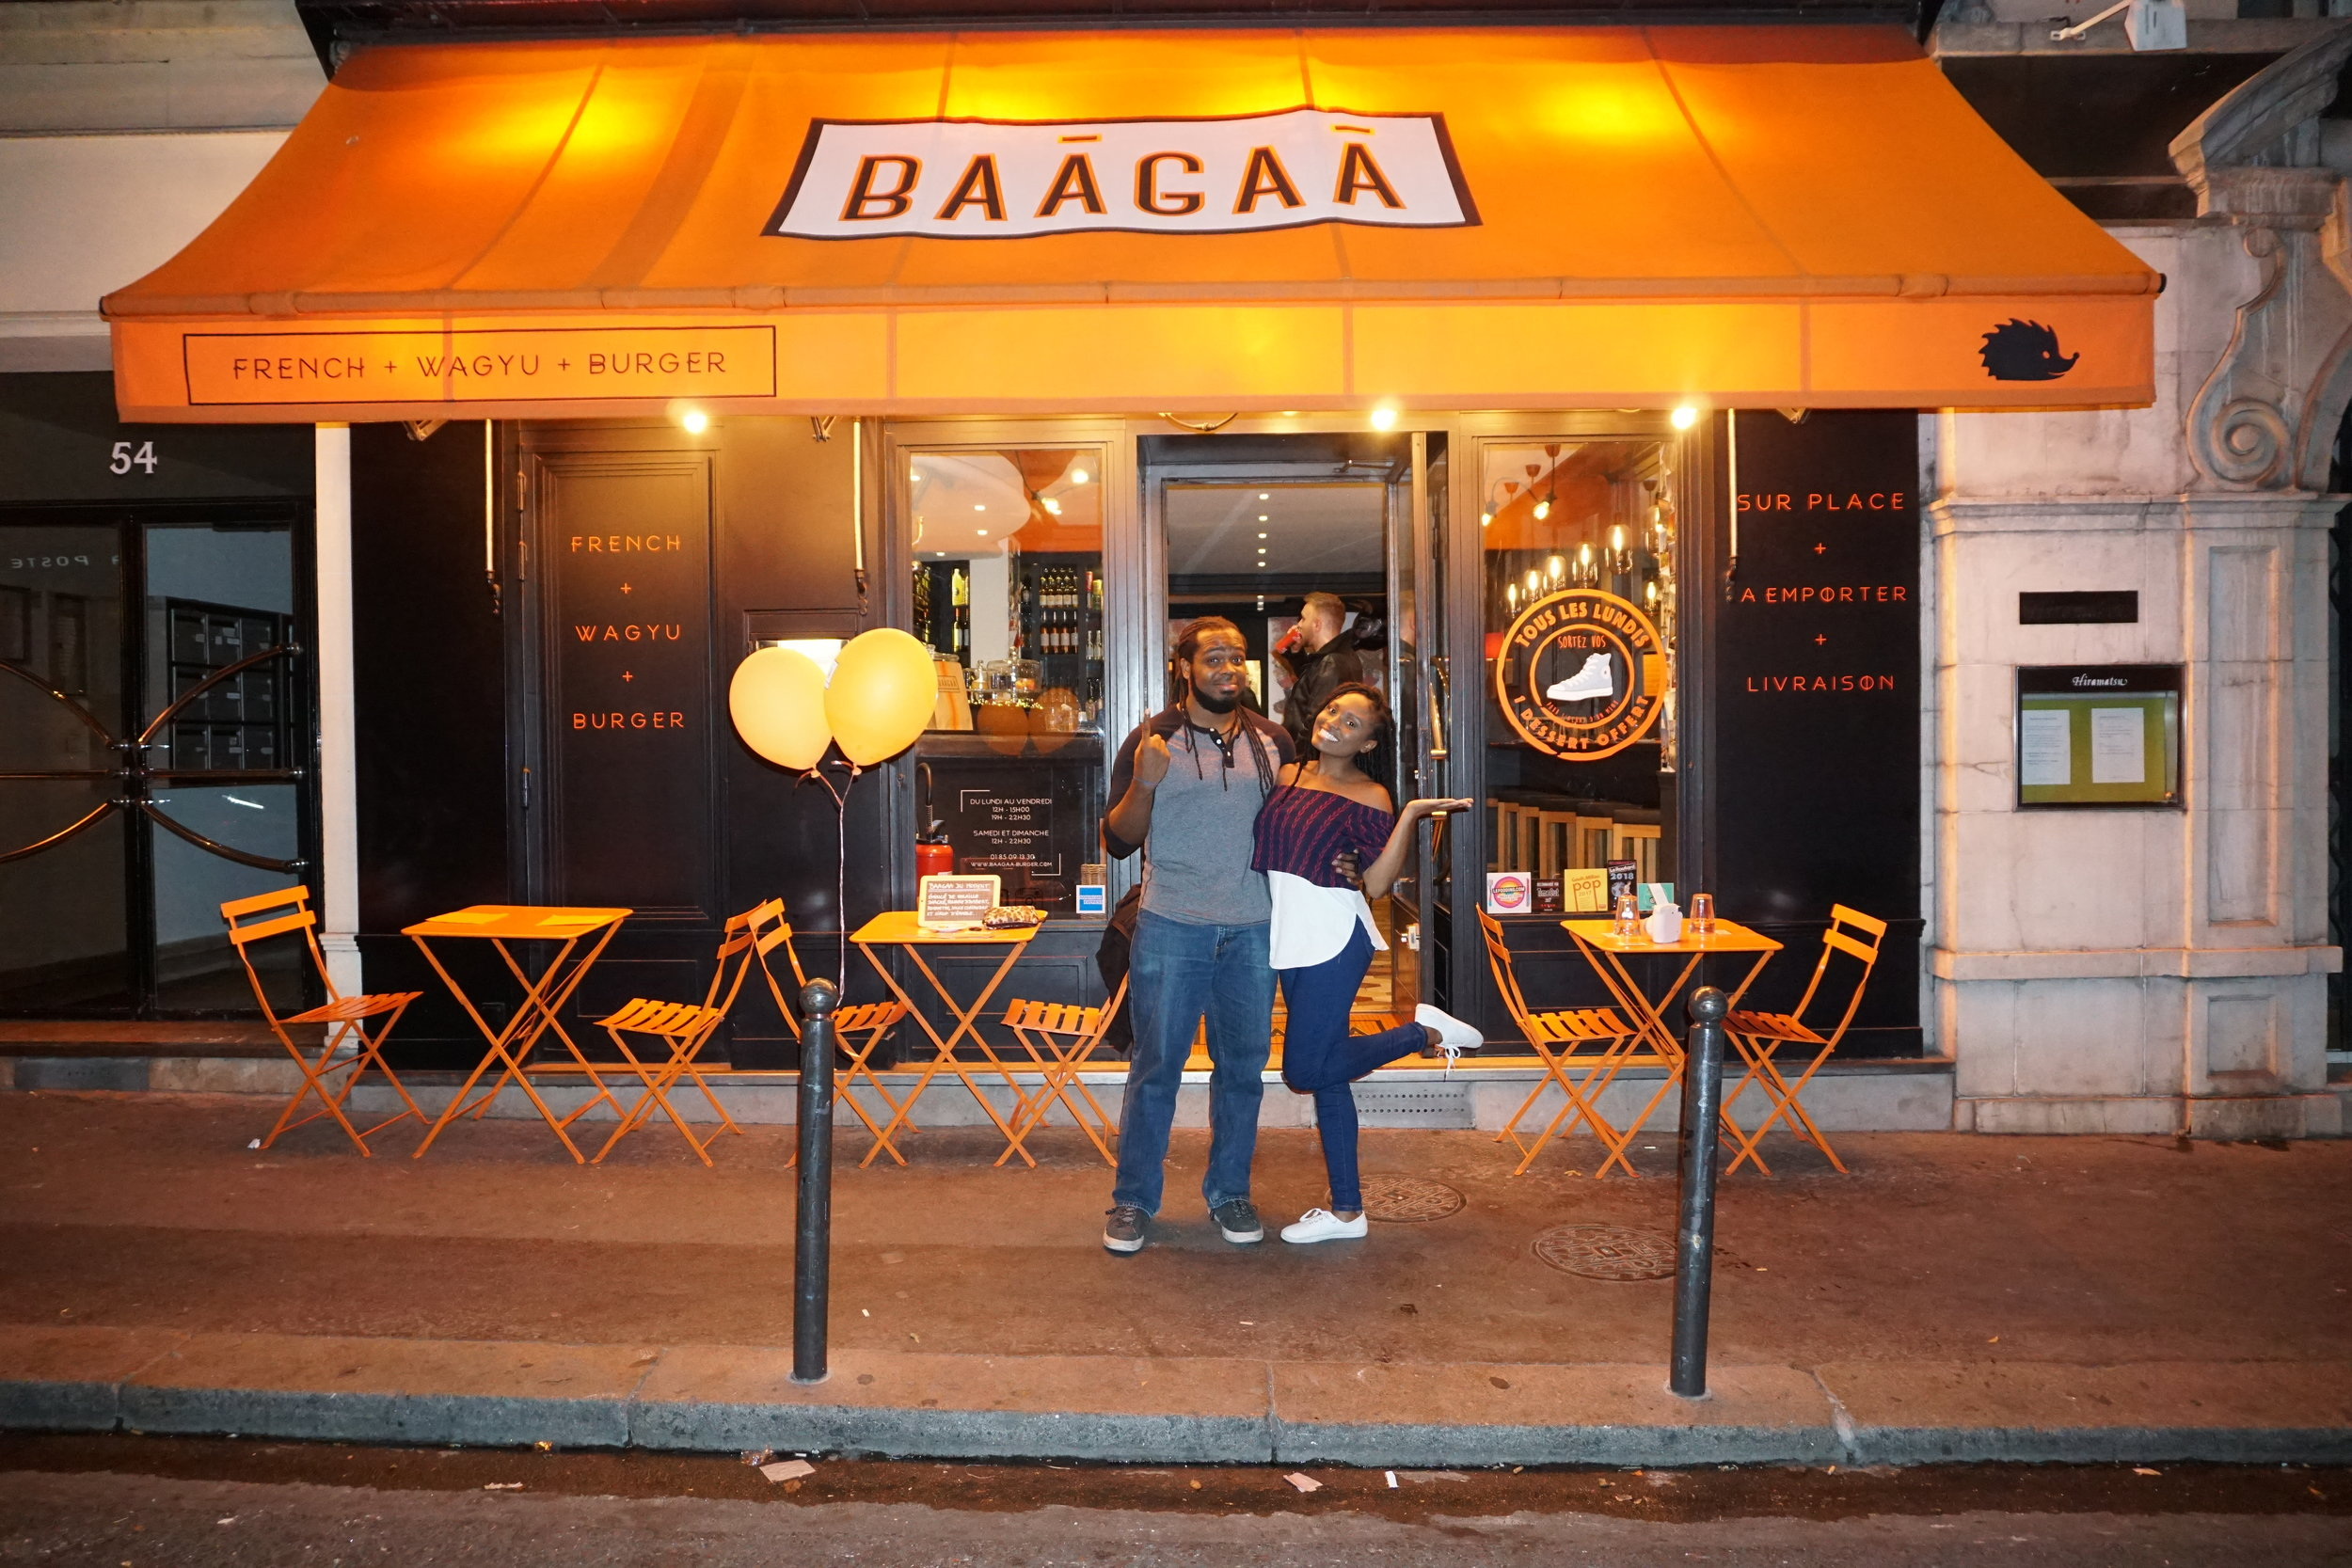 We smelled delicious burgers before we could see the restaurant. We were sold! - We ended up there and we were so happy with our choice. It was called Baagaa and boy was it delicious. I highly recommend visiting.